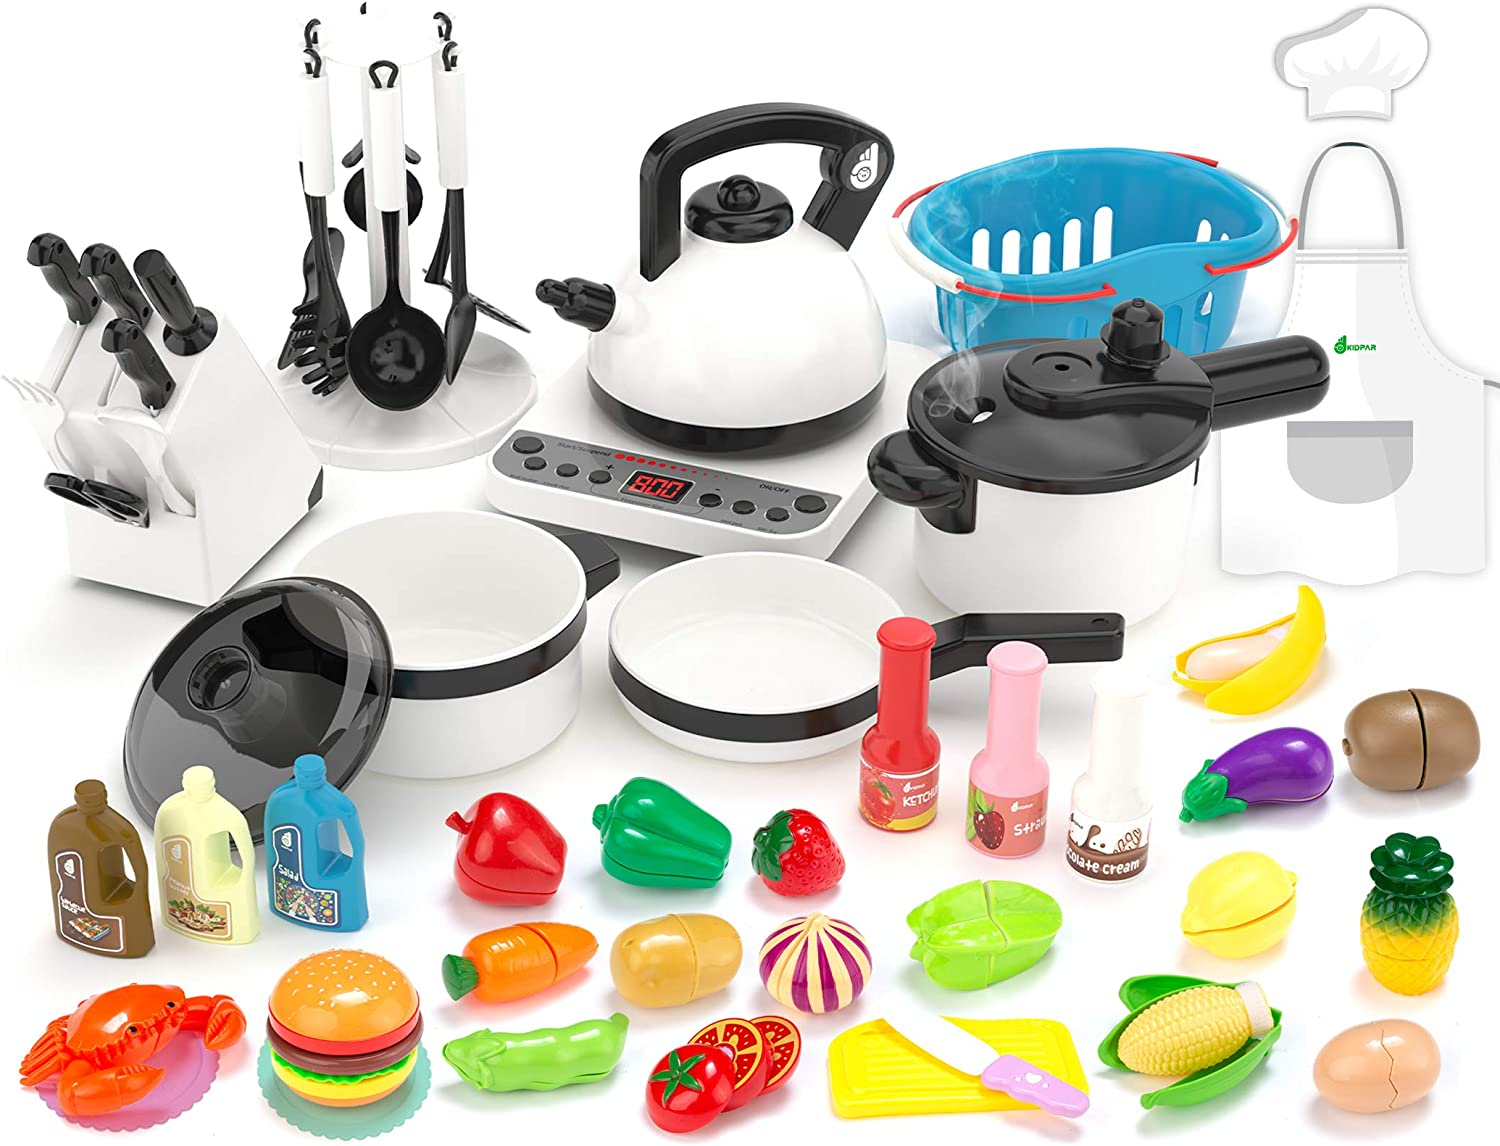 Cutting Fruit Toy Cutlery for Kids Girls Boys Toddlers Kids Kitchen Toy Pressure Pot and Electric Induction Cooktop Pan Cooking Set Toy with BBQ 43PCS Kitchen Playset Pretend Toy Shopping Basket